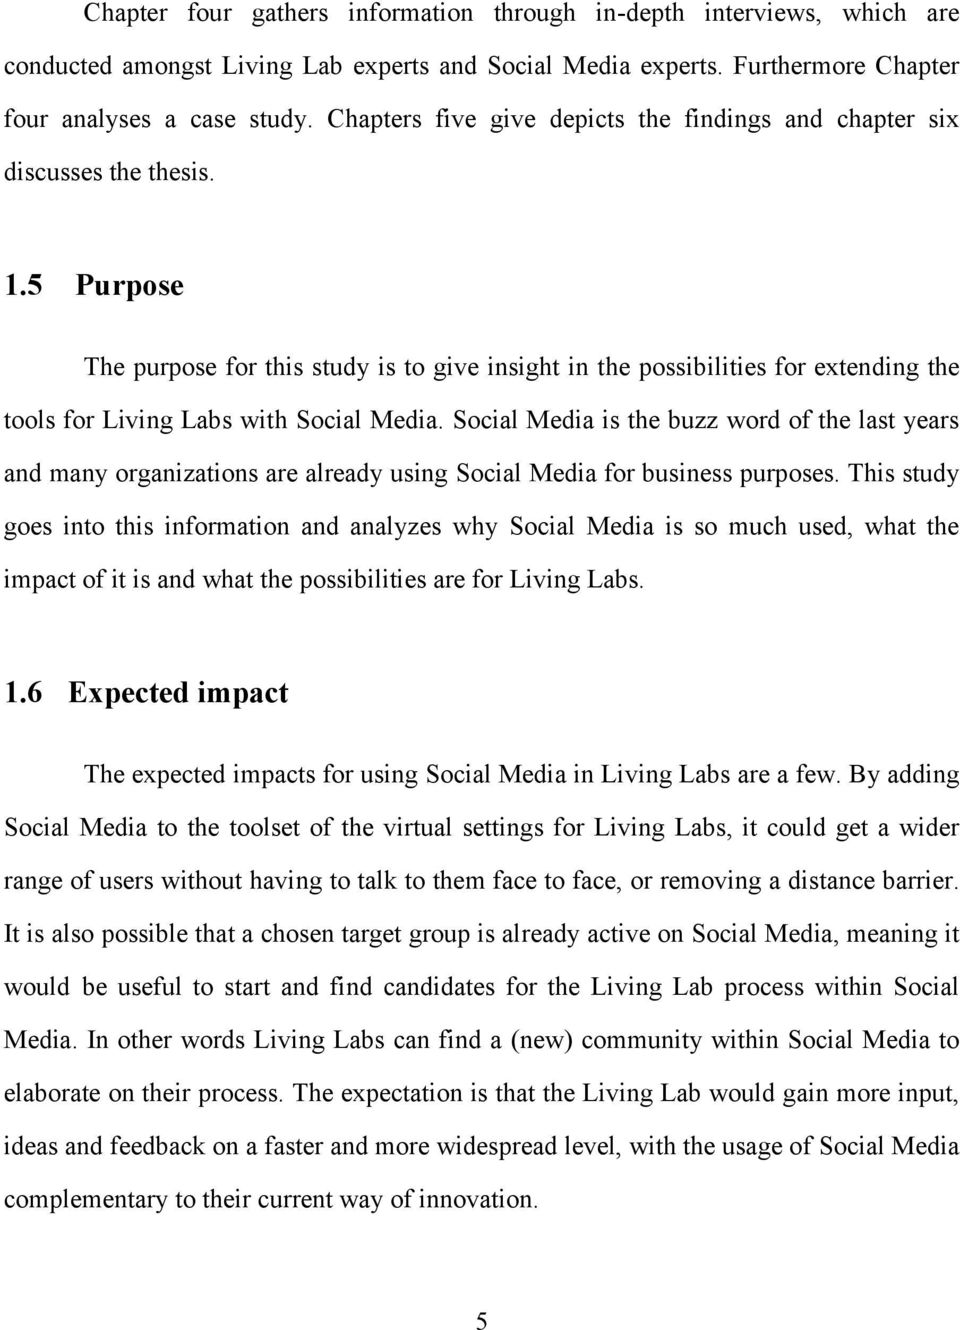 5 Purpose The purpose for this study is to give insight in the possibilities for extending the tools for Living Labs with Social Media.